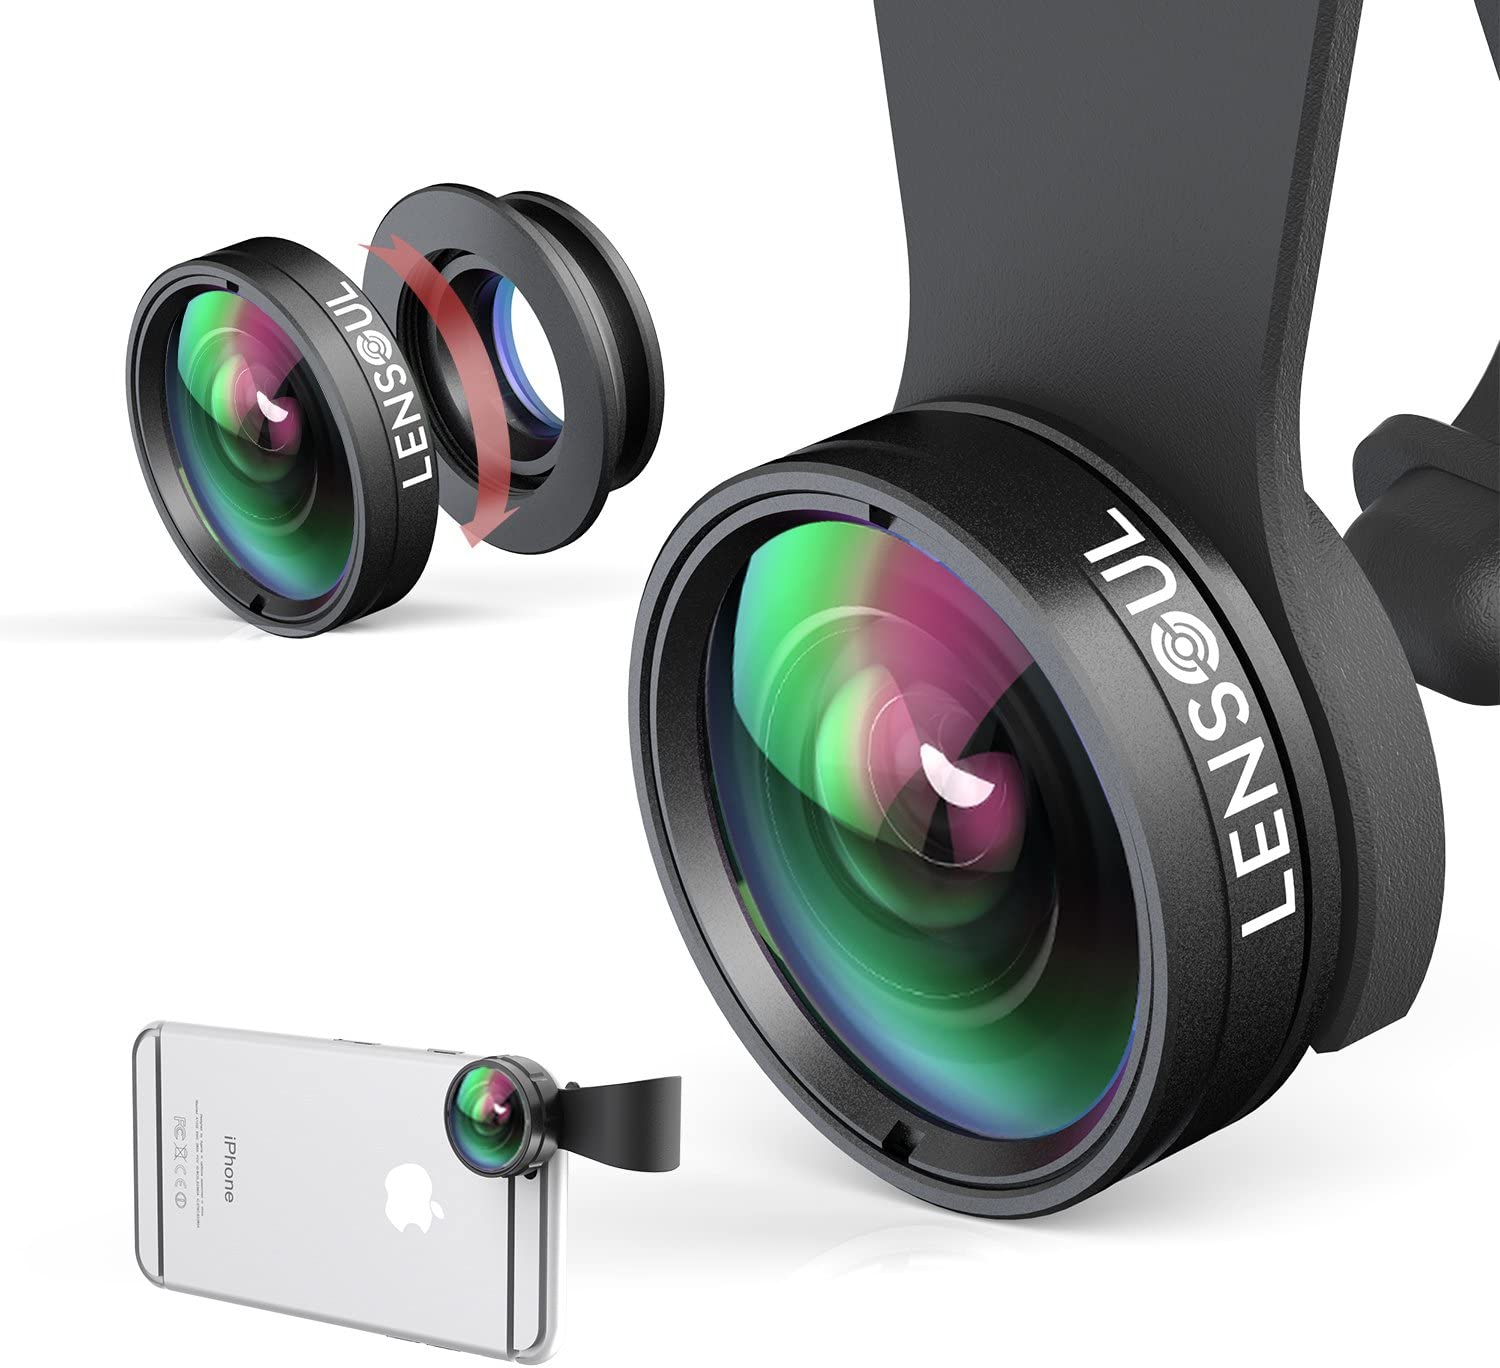 Gnc33Ouhen Mobile Phone Camera Lens Kit 3 in 1 Lens kit,Macro Super Wide Angle Fisheye Lens+Clip,Compatible with Most Android Phones and Smartphones Black